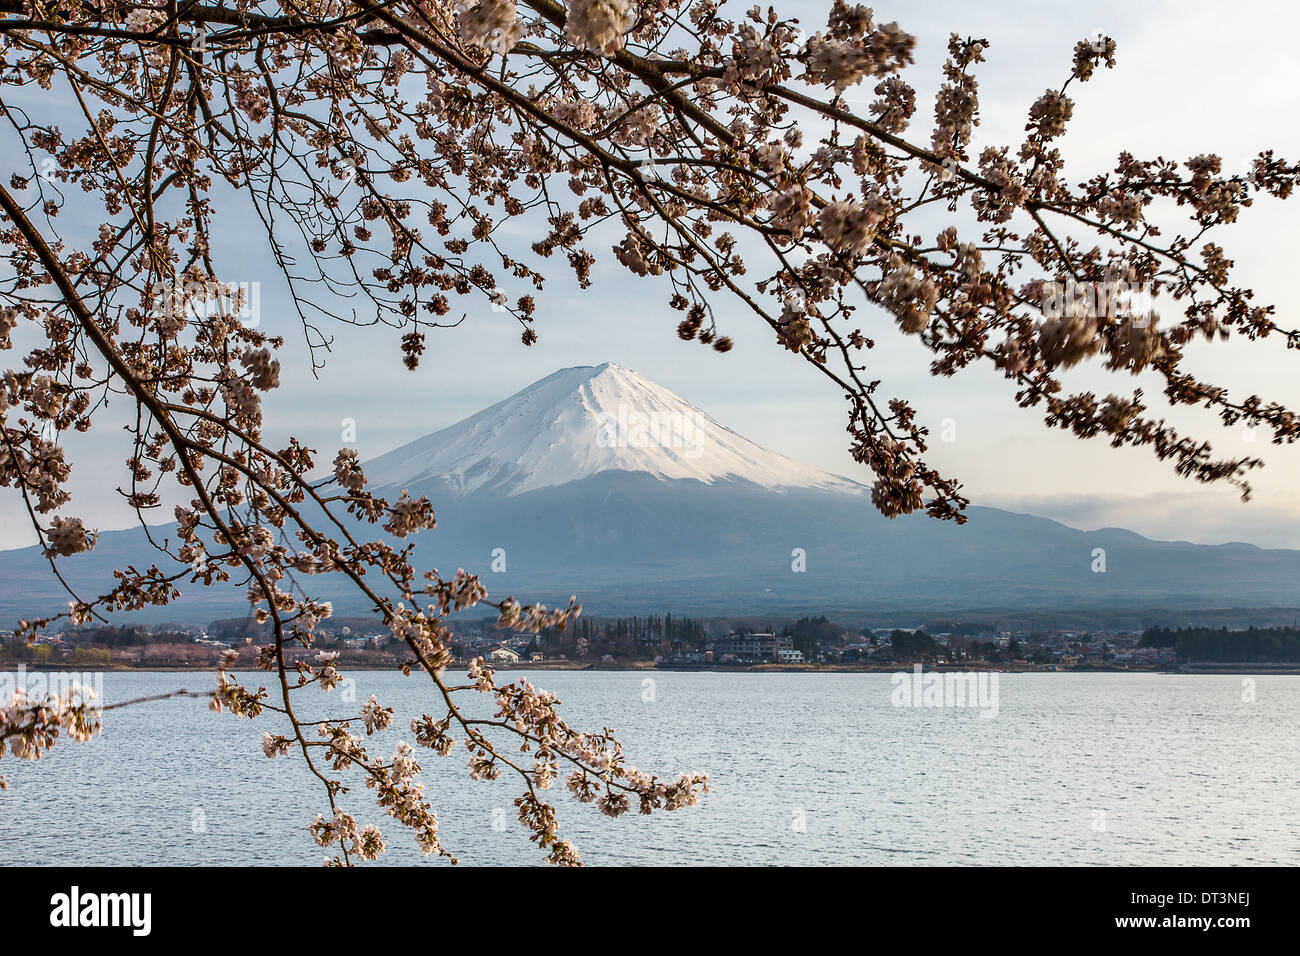 Nice and beautiful scenery of mount Fuji and cherry blossoms in spring time, Japan - Stock Image